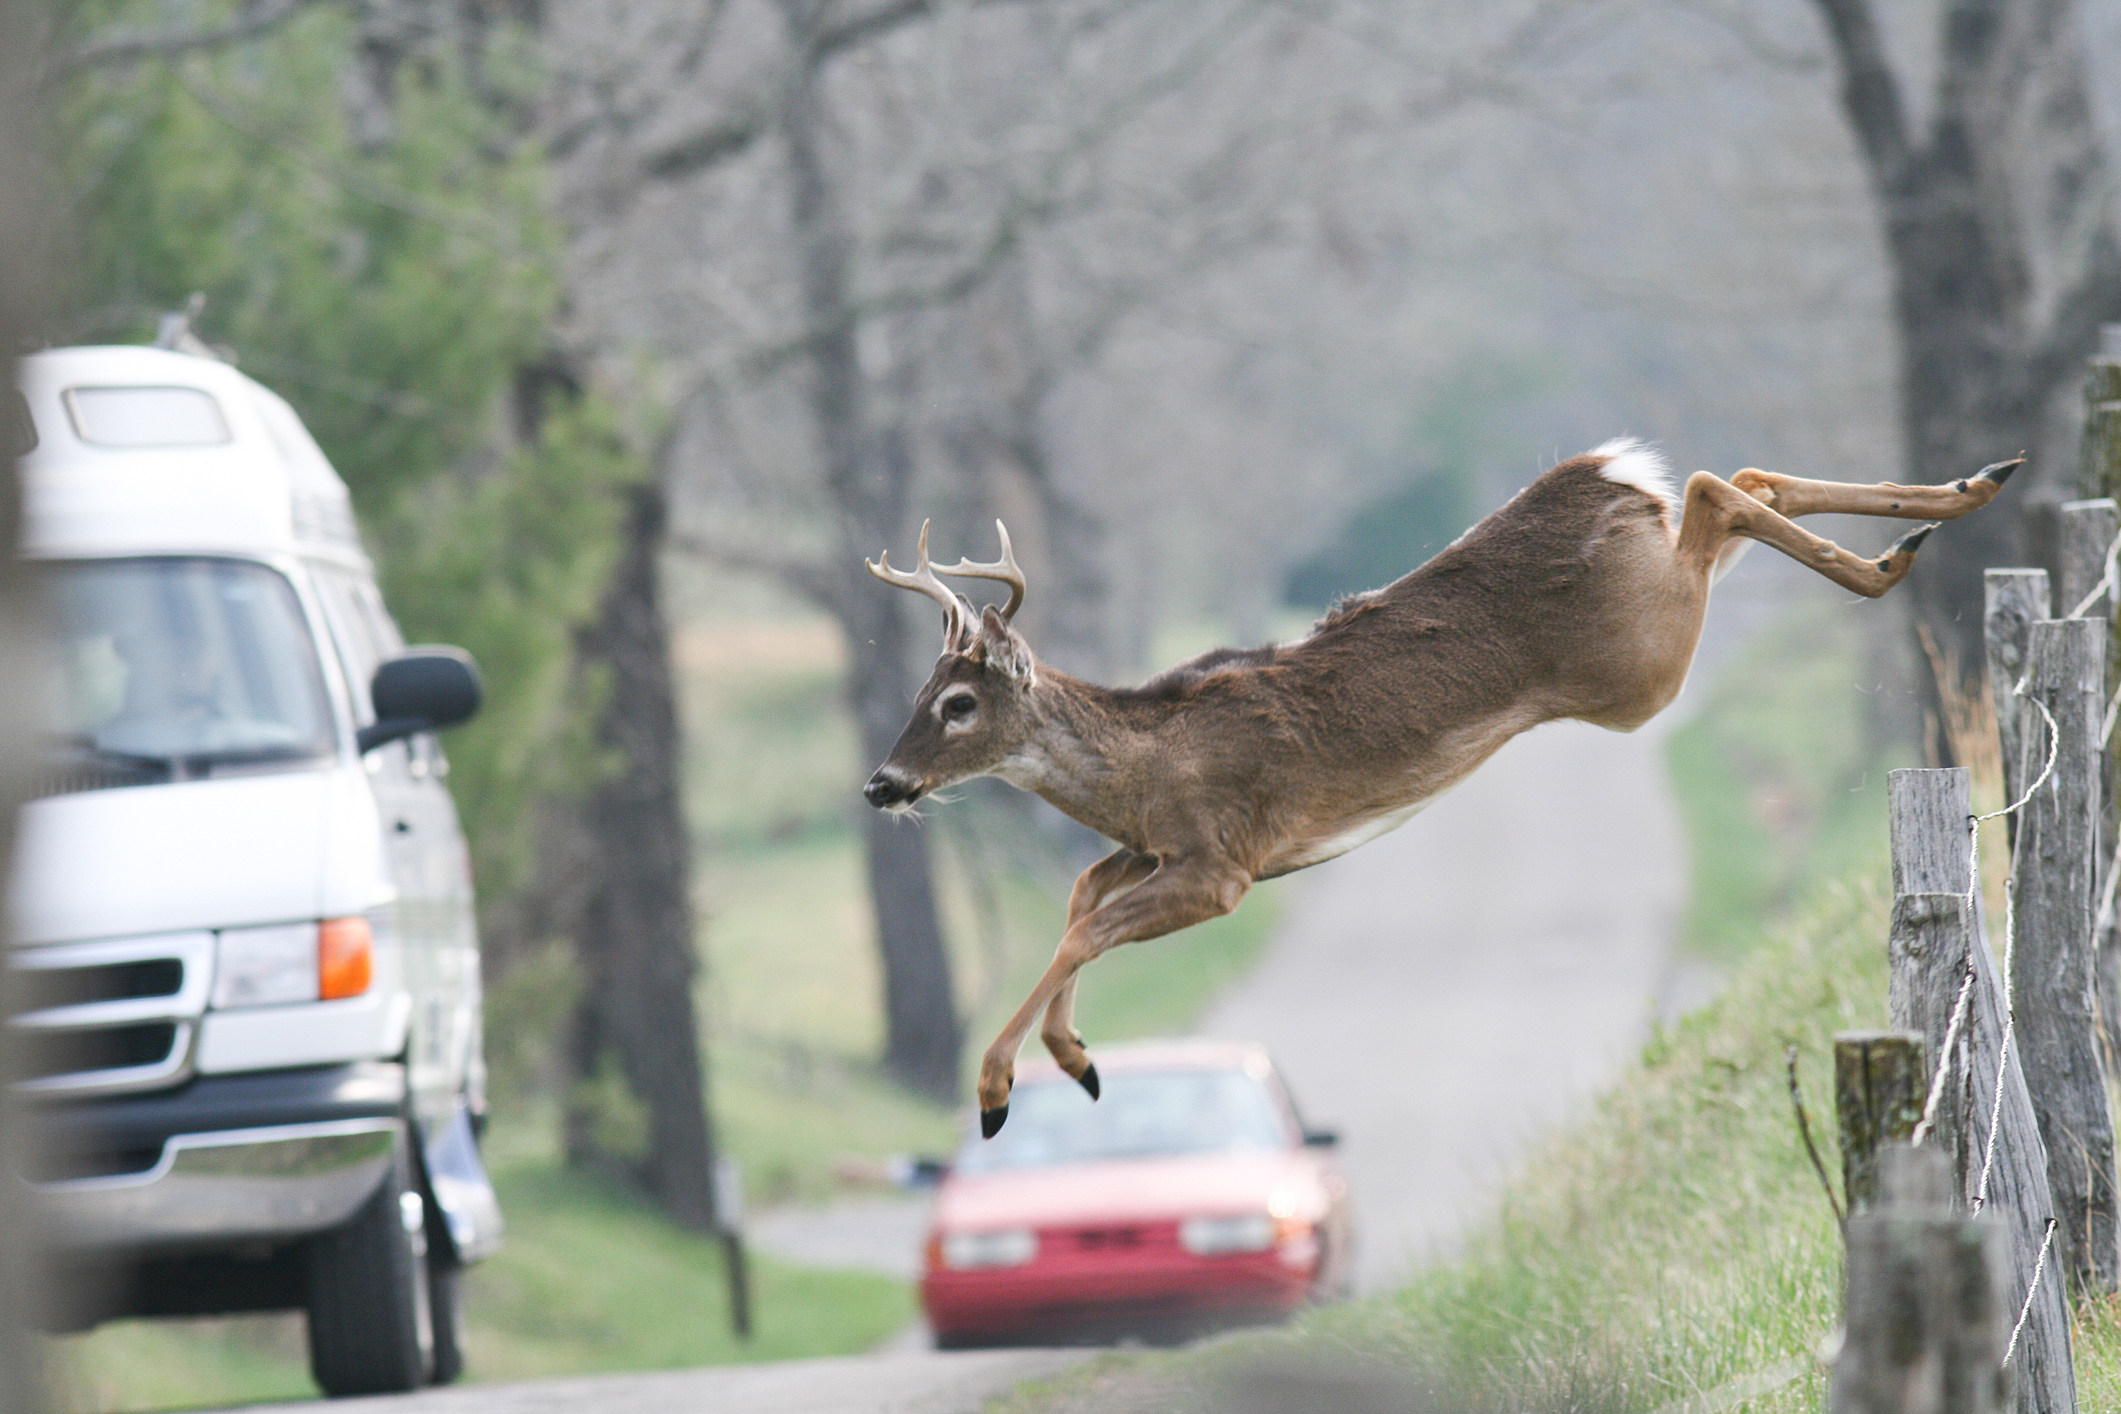 Deer Plays Drum Fill From In The Air Tonight